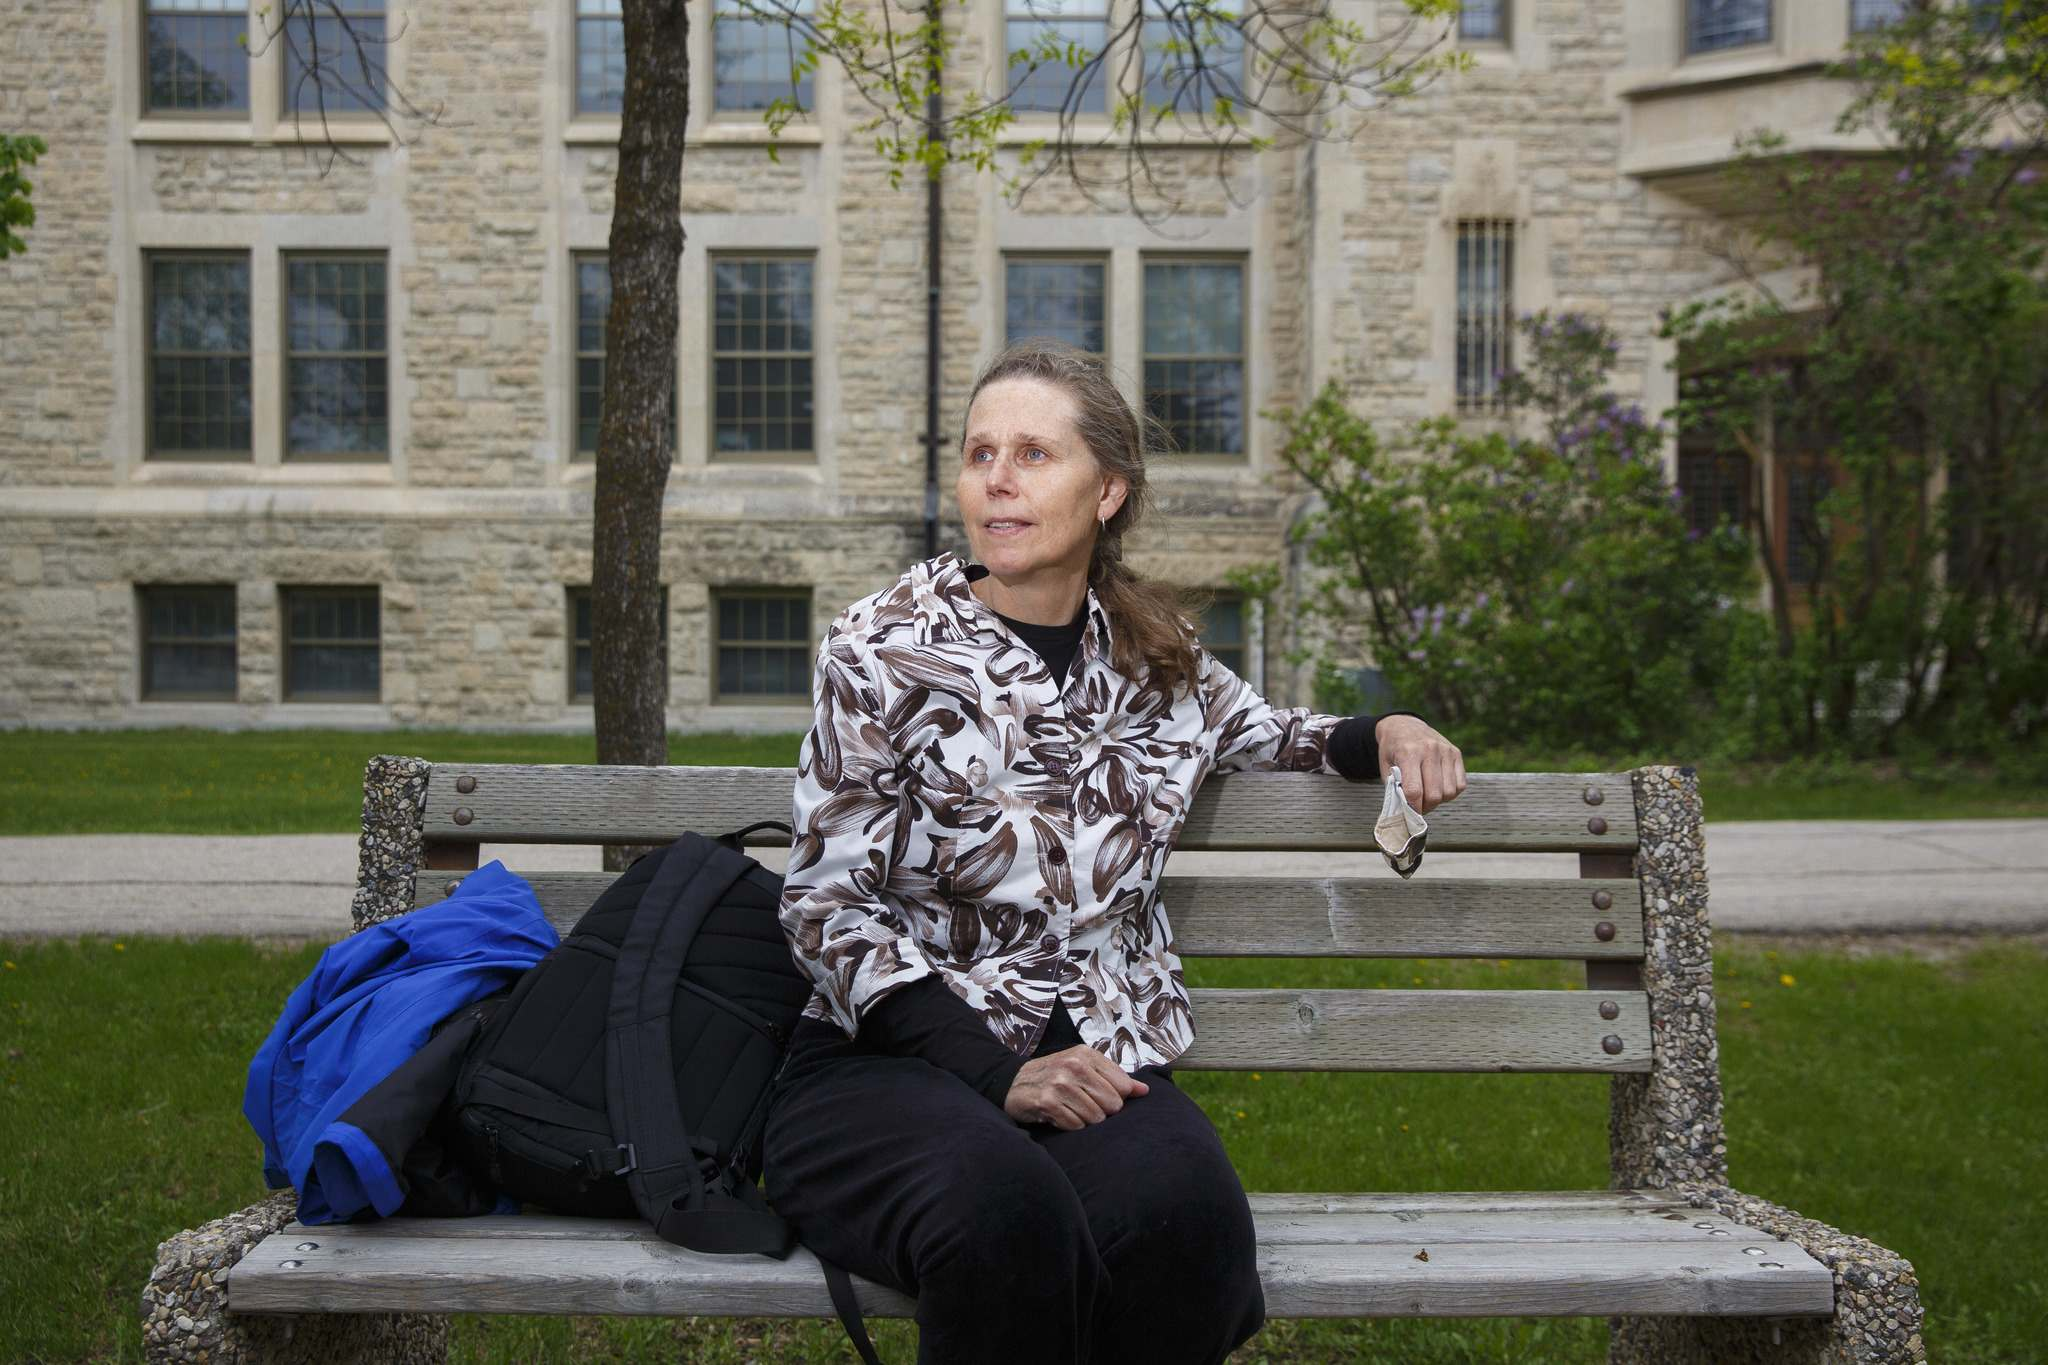 MIKE DEAL / WINNIPEG FREE PRESS FILES</p><p>Michelle Porter, director of the University of Manitoba's Centre on Aging, says ageism is a form of discrimination that's remained acceptable.</p></p>